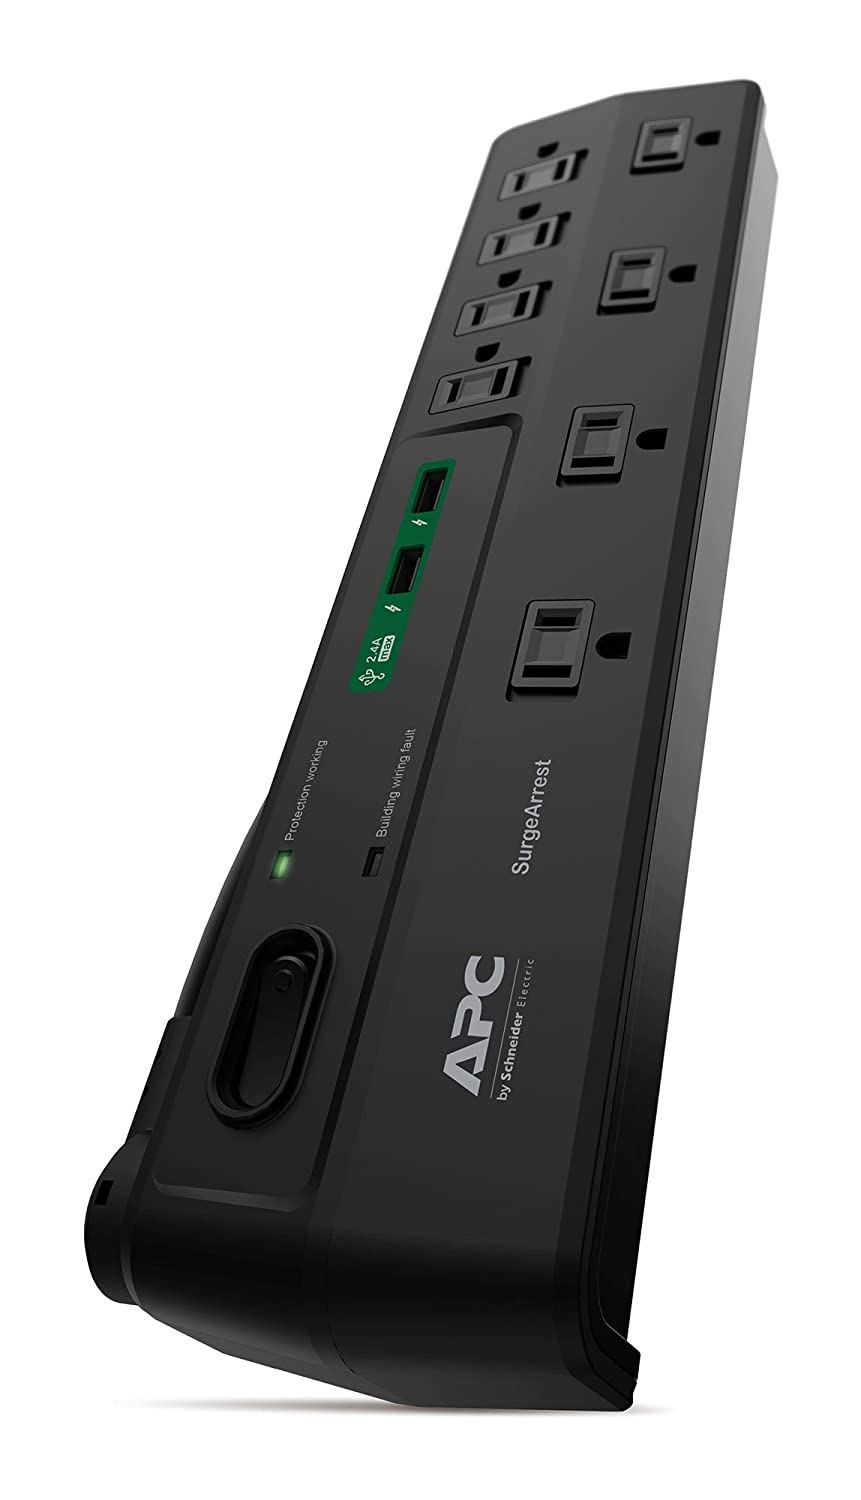 Power Surge Protector : Apc outlet surge protector joules with usb charger